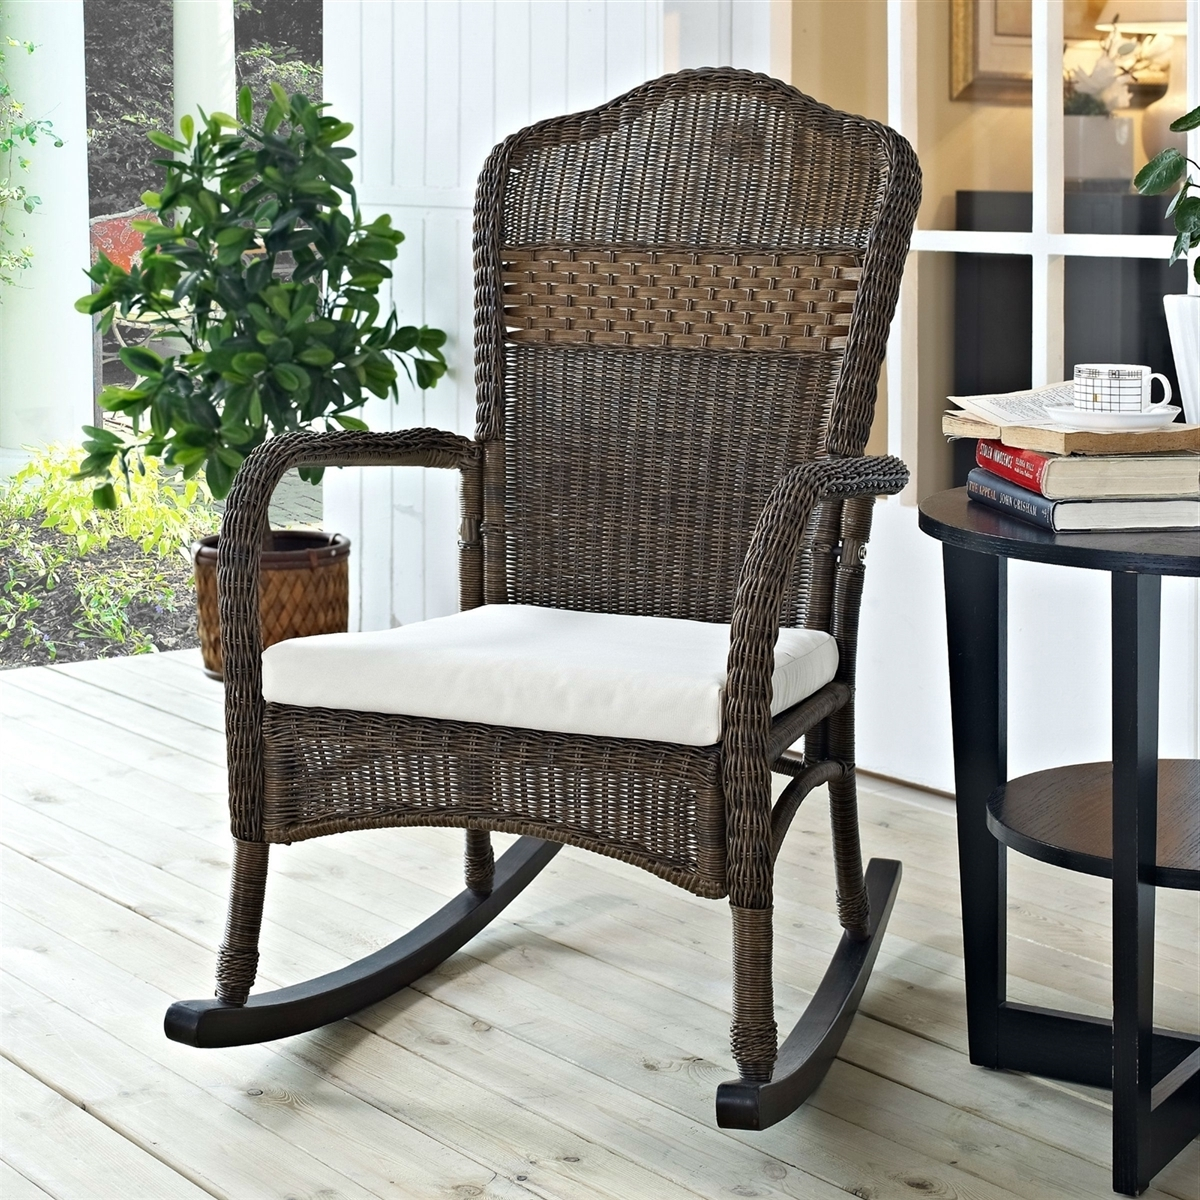 Best And Newest Resin Wicker Patio Rocking Chairs Within Wicker Patio Furniture Rocking Chair Mocha With Beige Cushion (View 1 of 15)